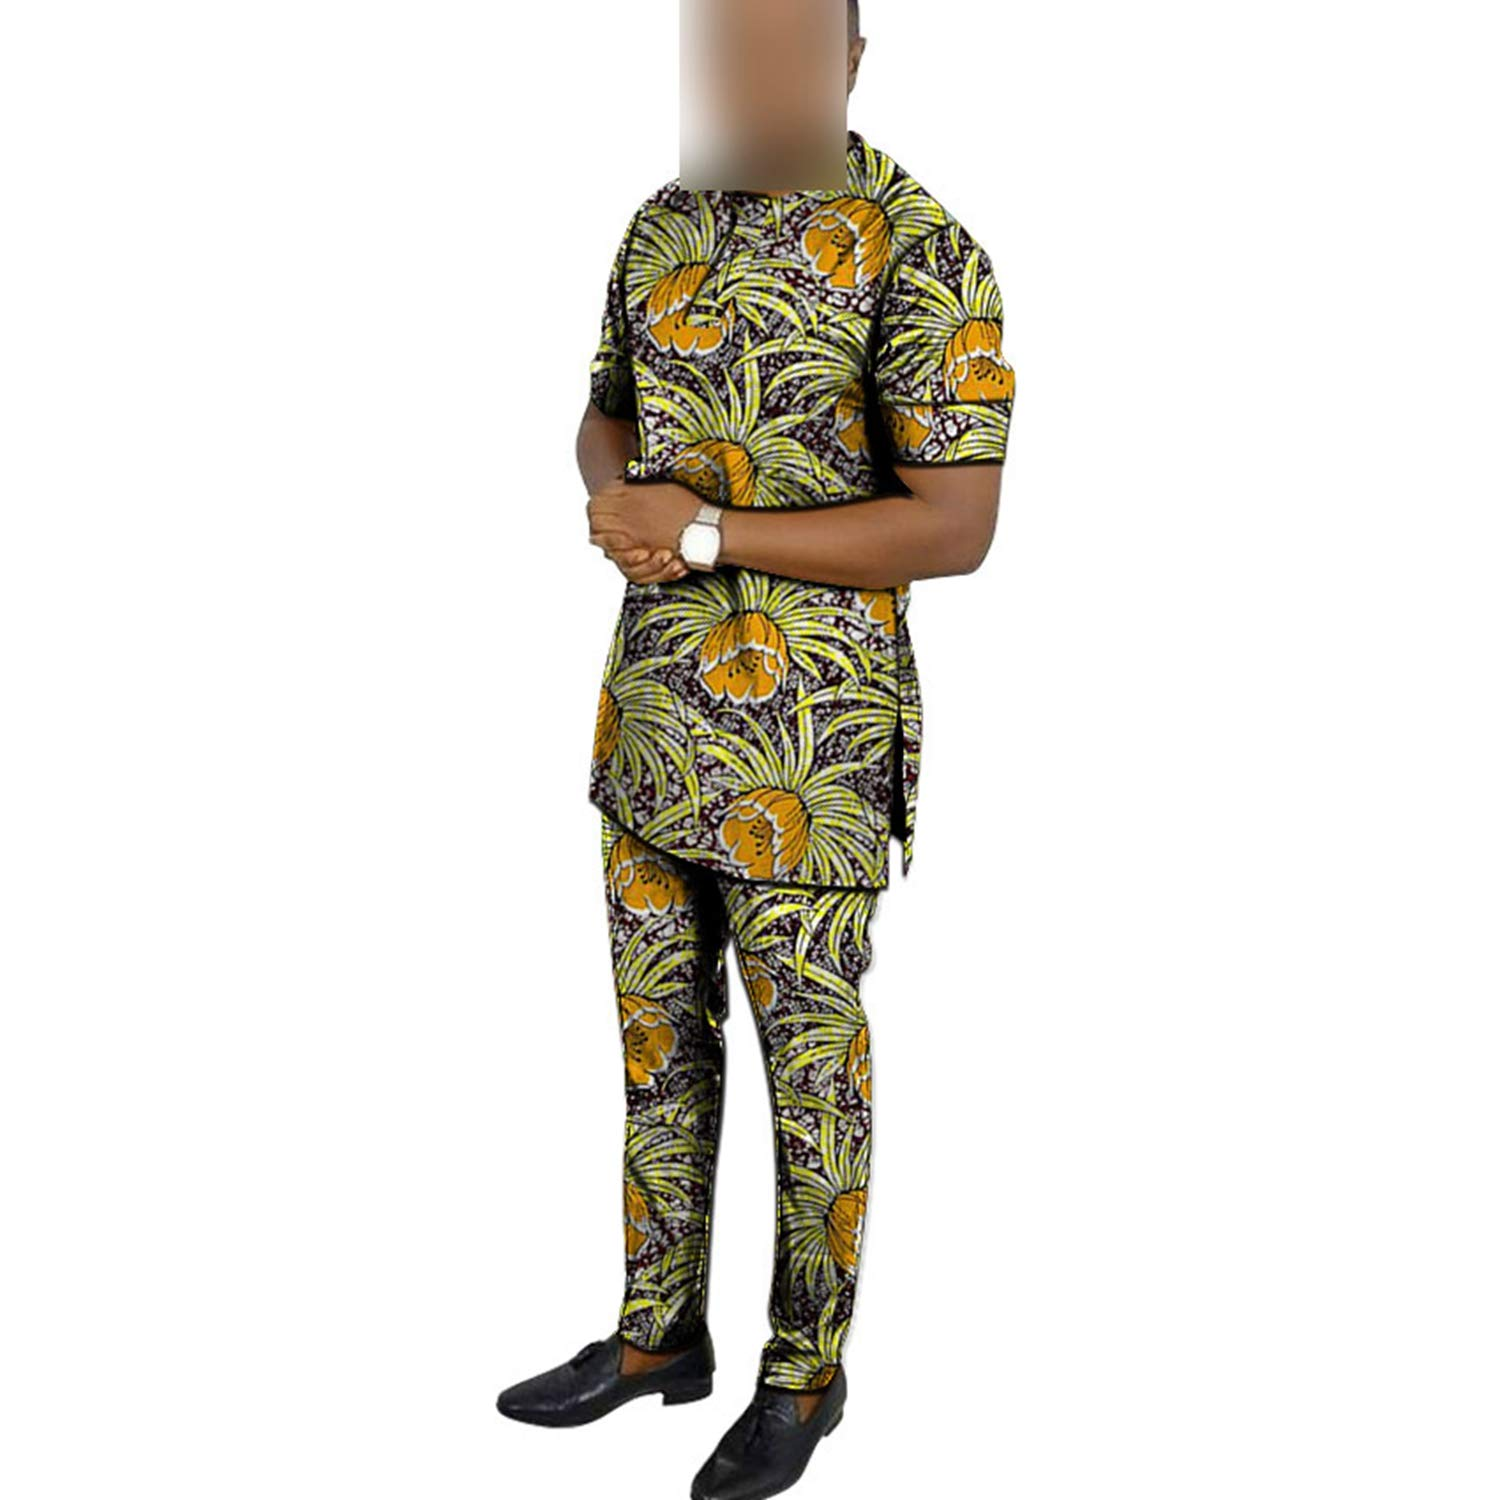 Sonjer African Clothing Mens Print Set Short Sleeve Shirt with Trouser Pant Sets